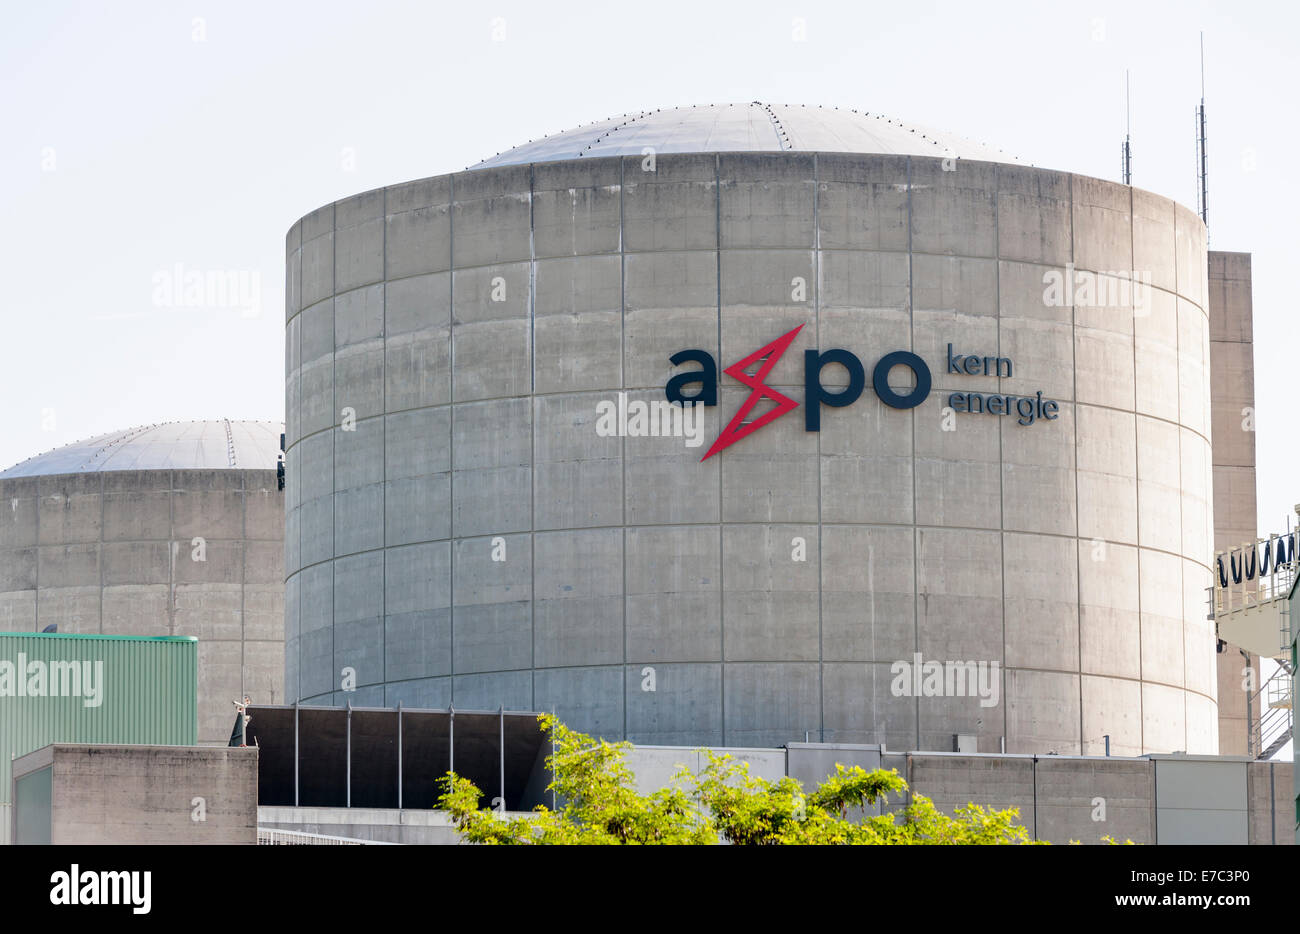 Reactor building of the nuclear power plant Beznau, Switzerland (canton Aargau). - Stock Image